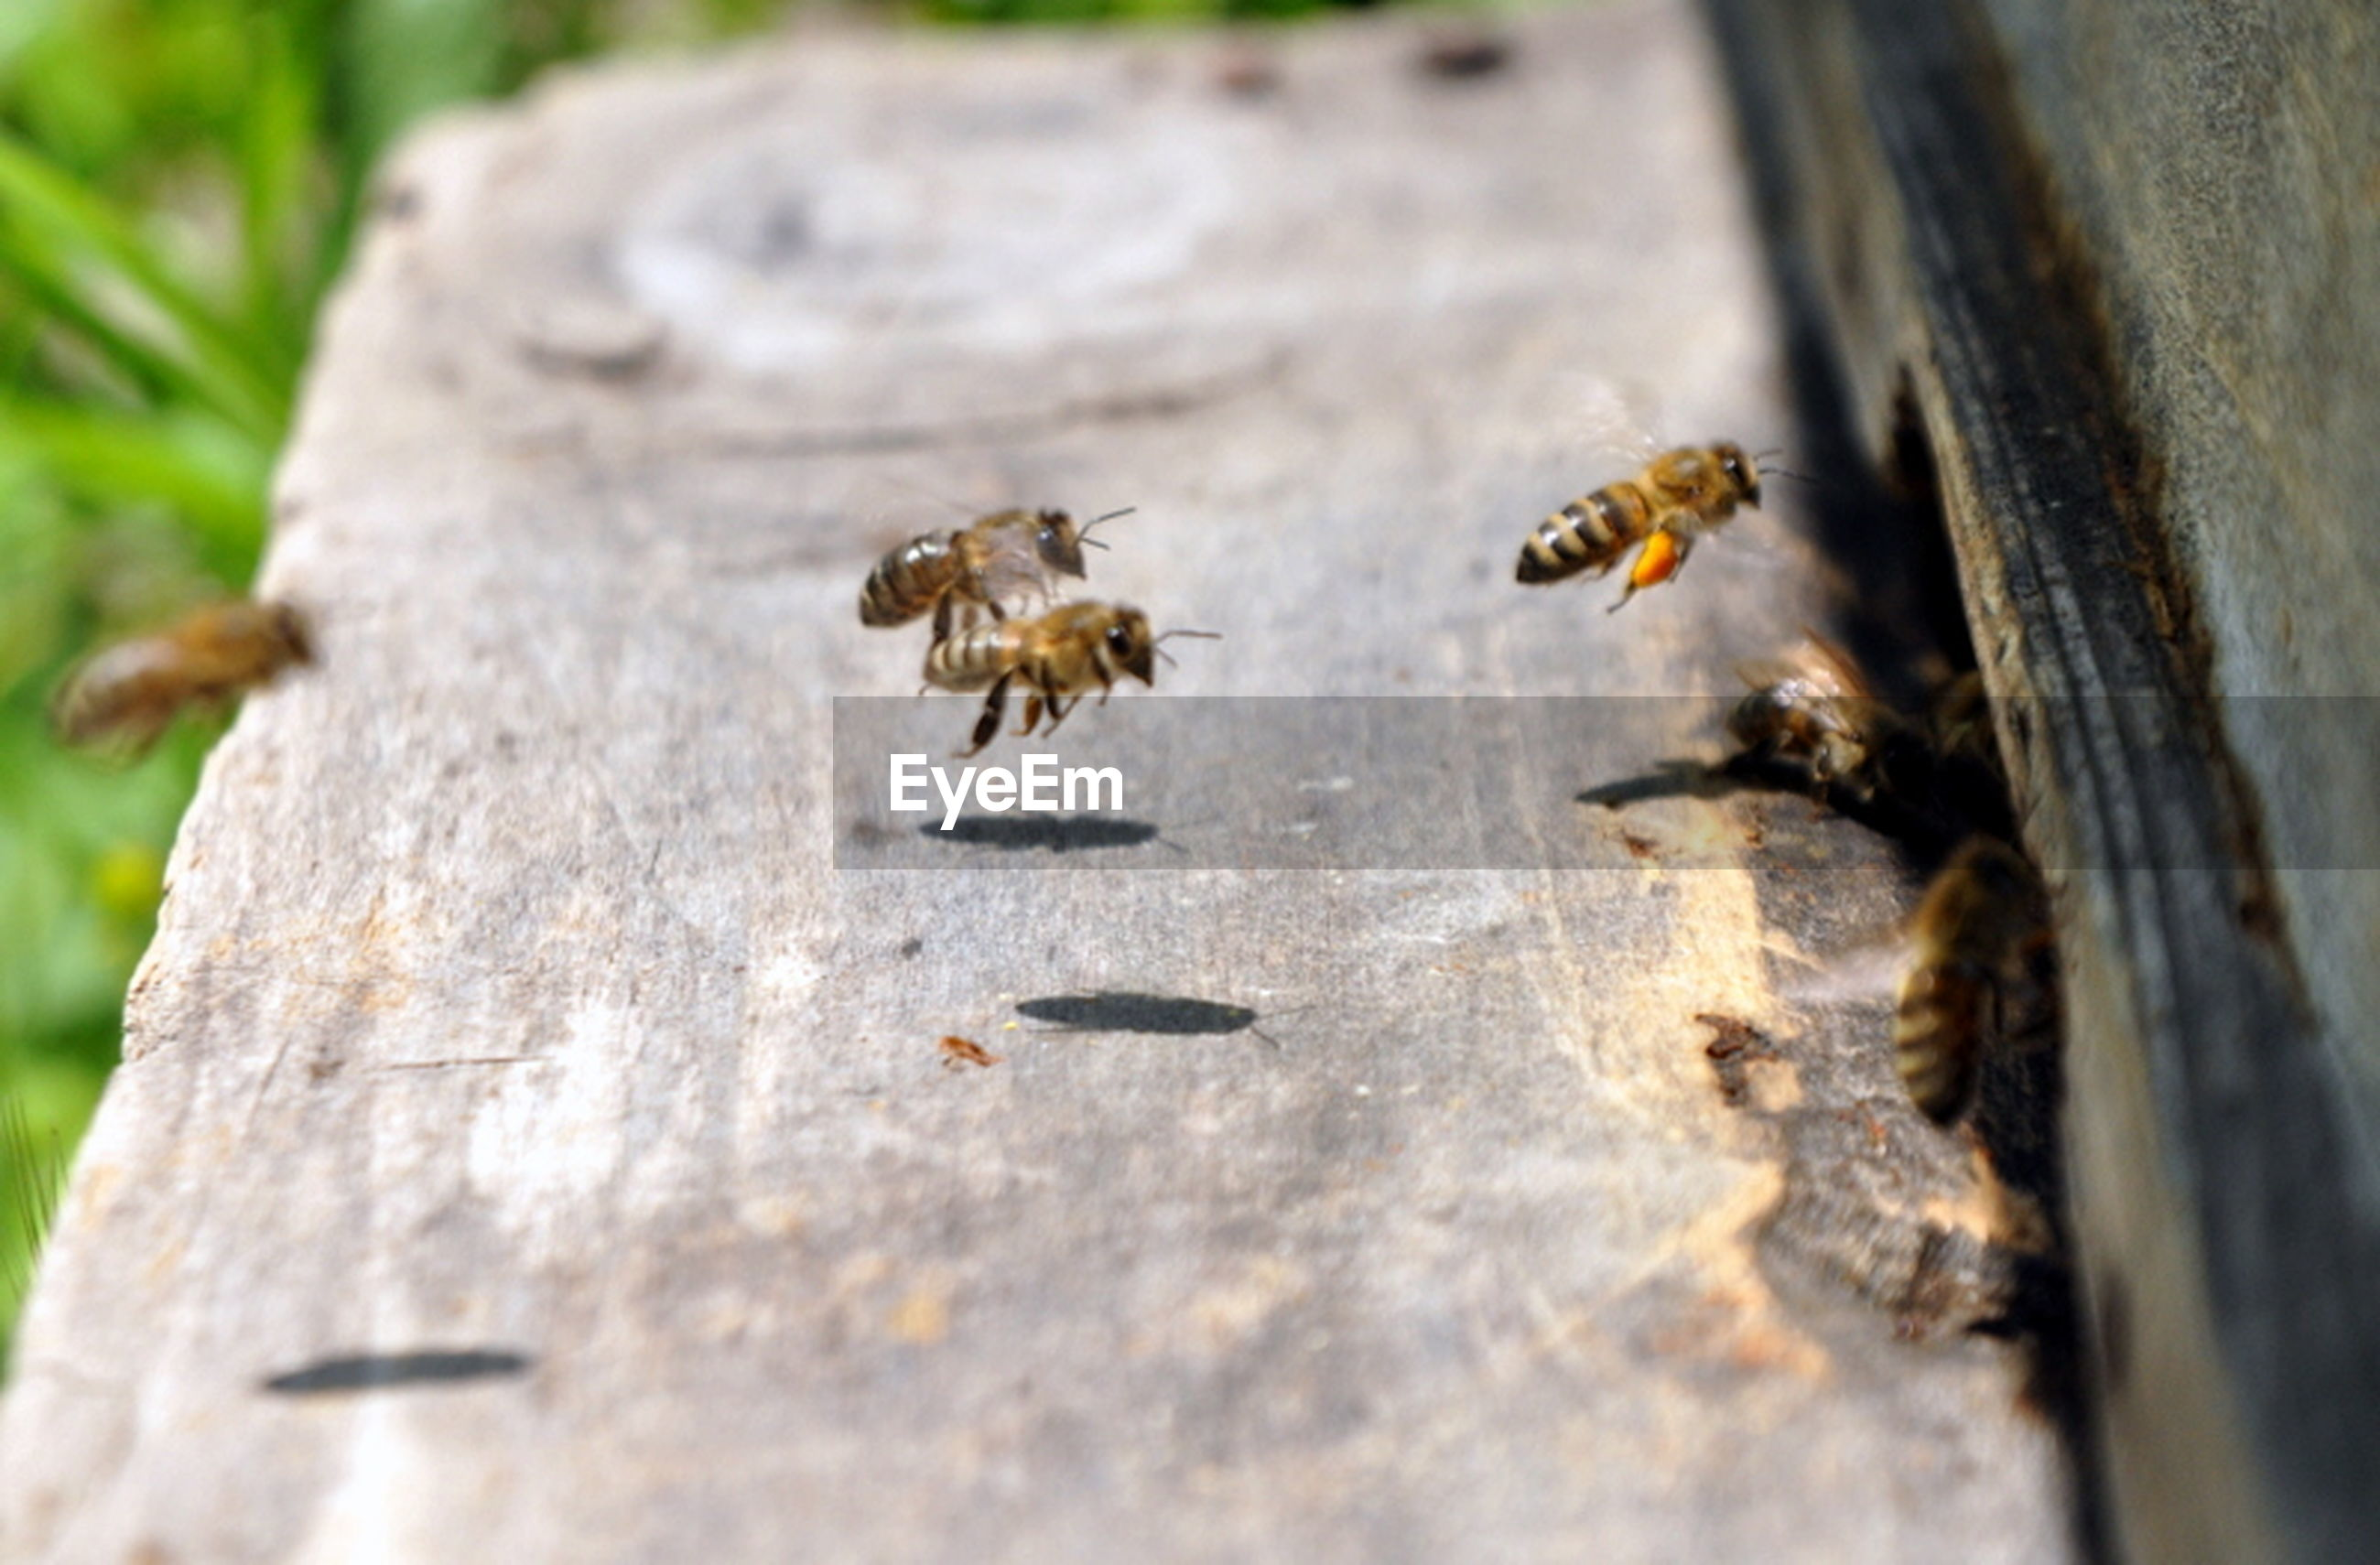 animals in the wild, animal themes, wildlife, insect, one animal, selective focus, wood - material, close-up, nature, textured, day, outdoors, focus on foreground, plank, no people, tree trunk, ant, zoology, wooden, high angle view